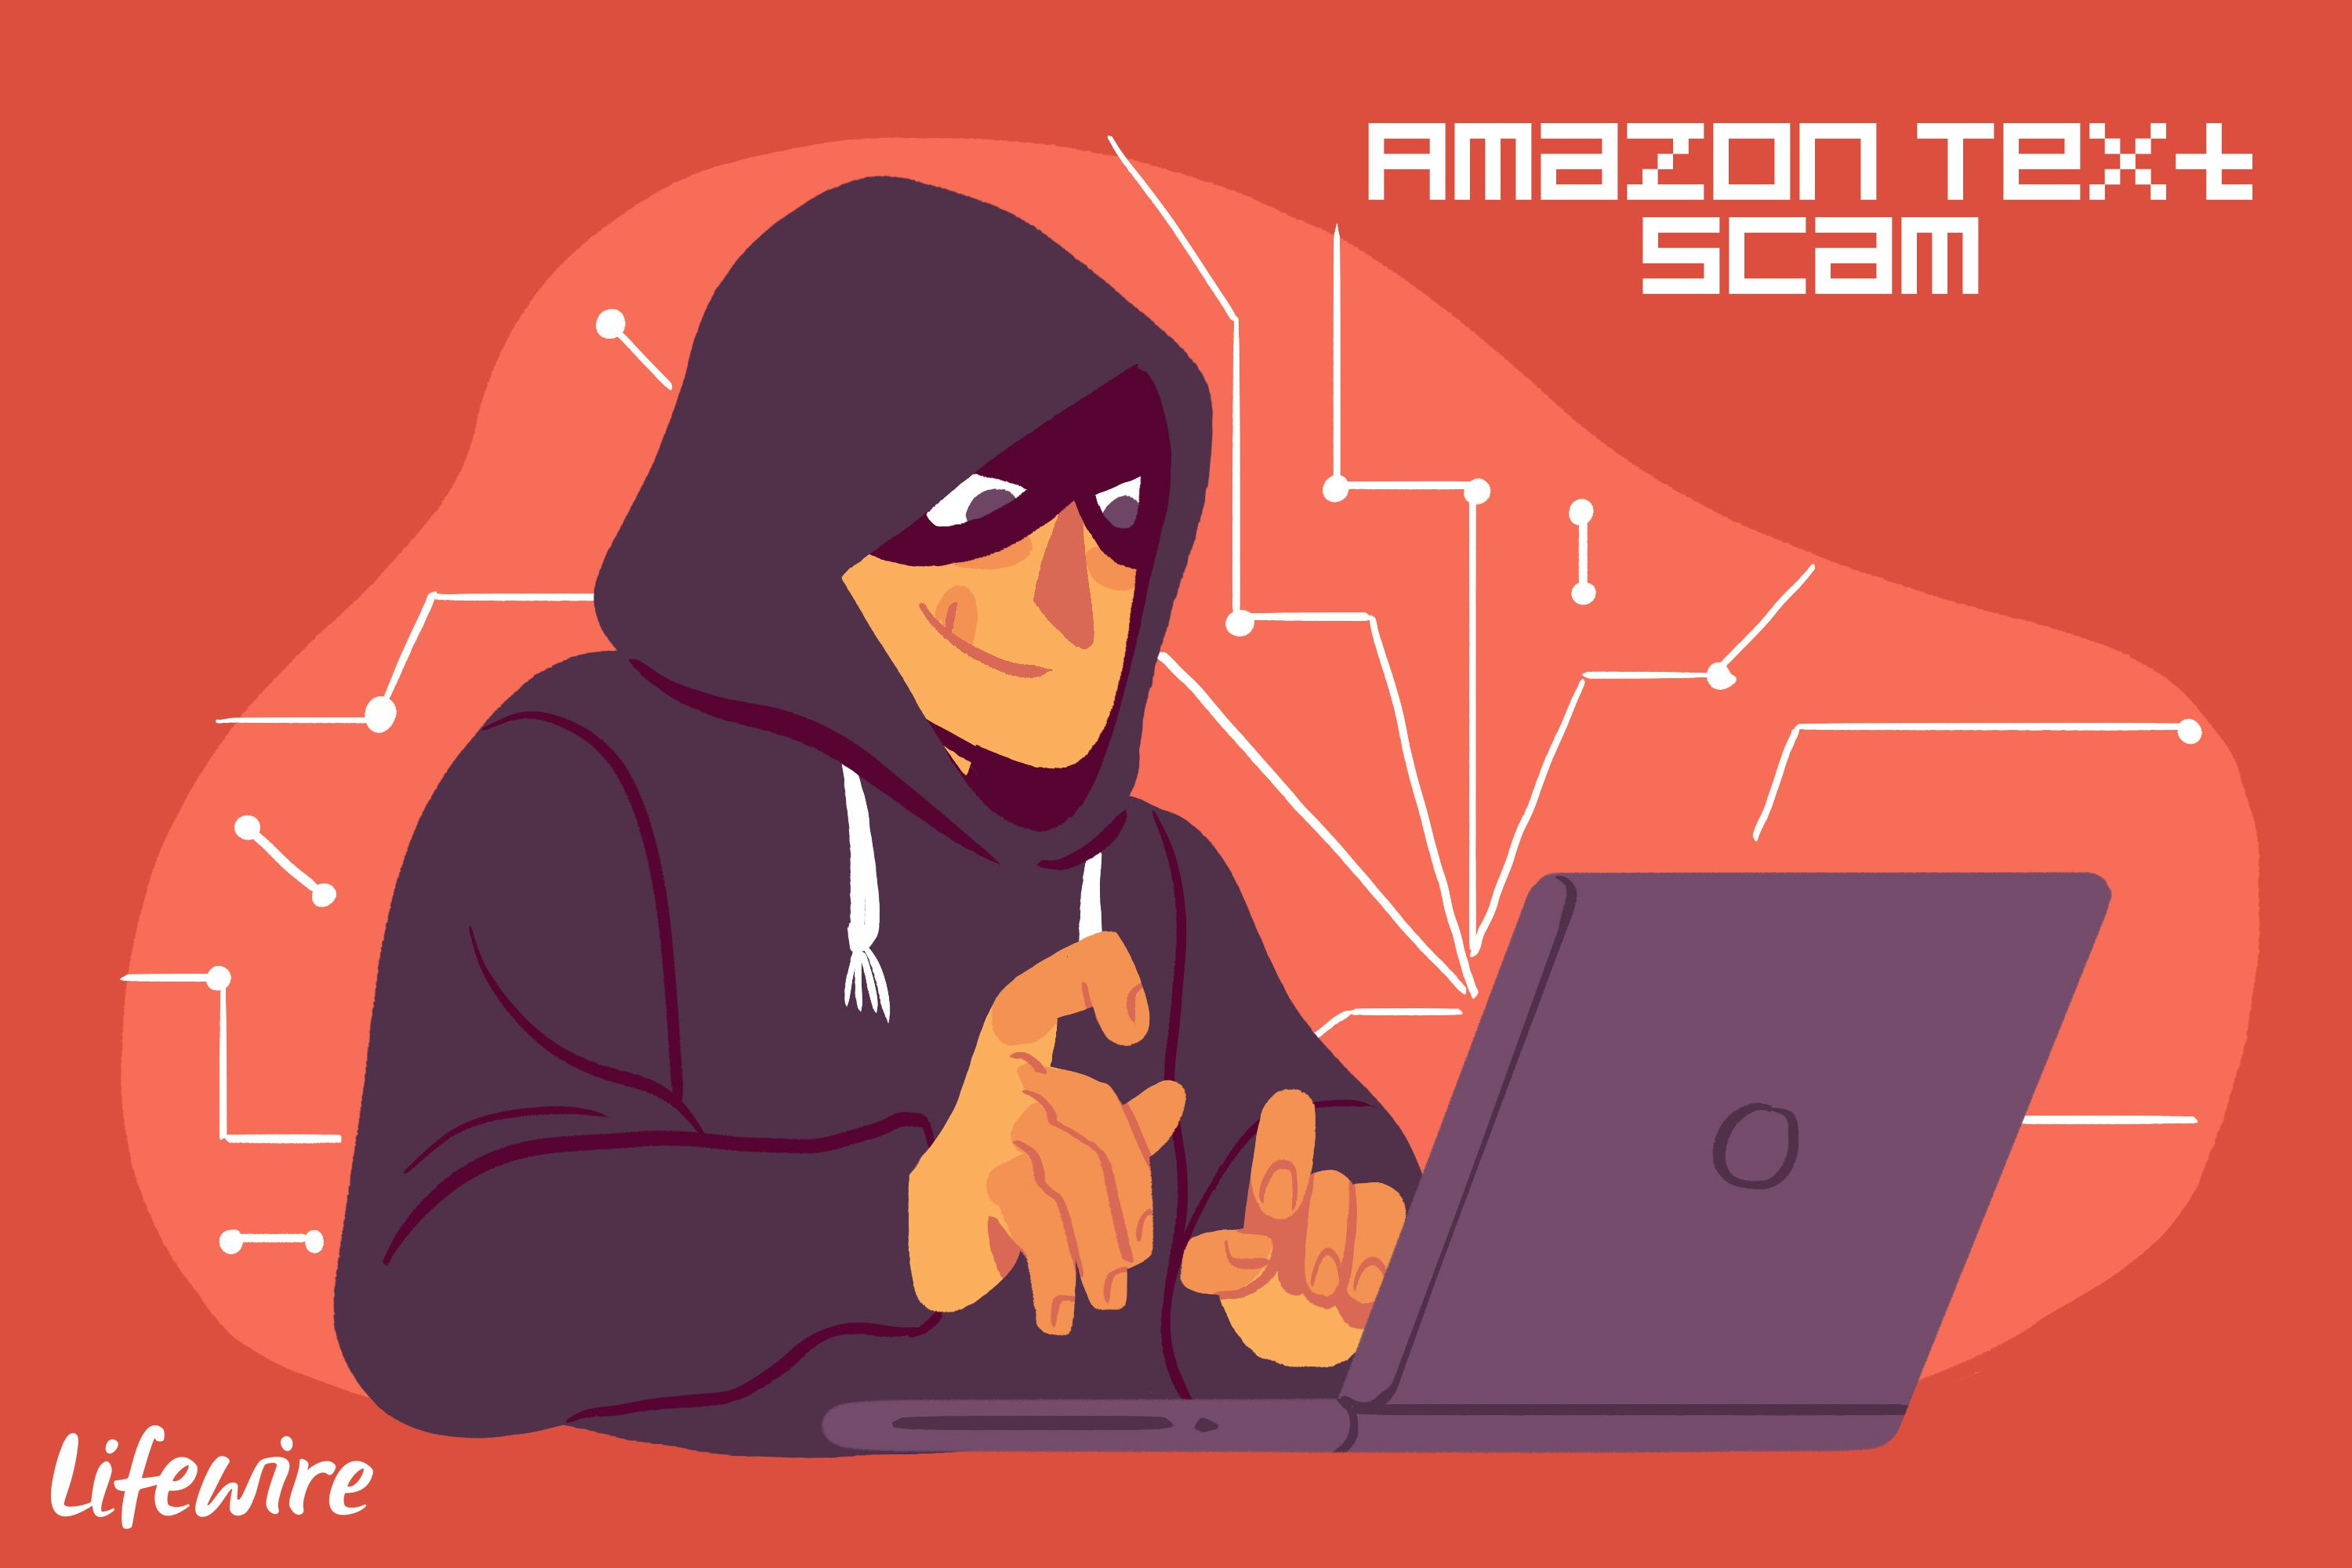 The Amazon Text Scam: What It Is and How to Protect Yourself From It